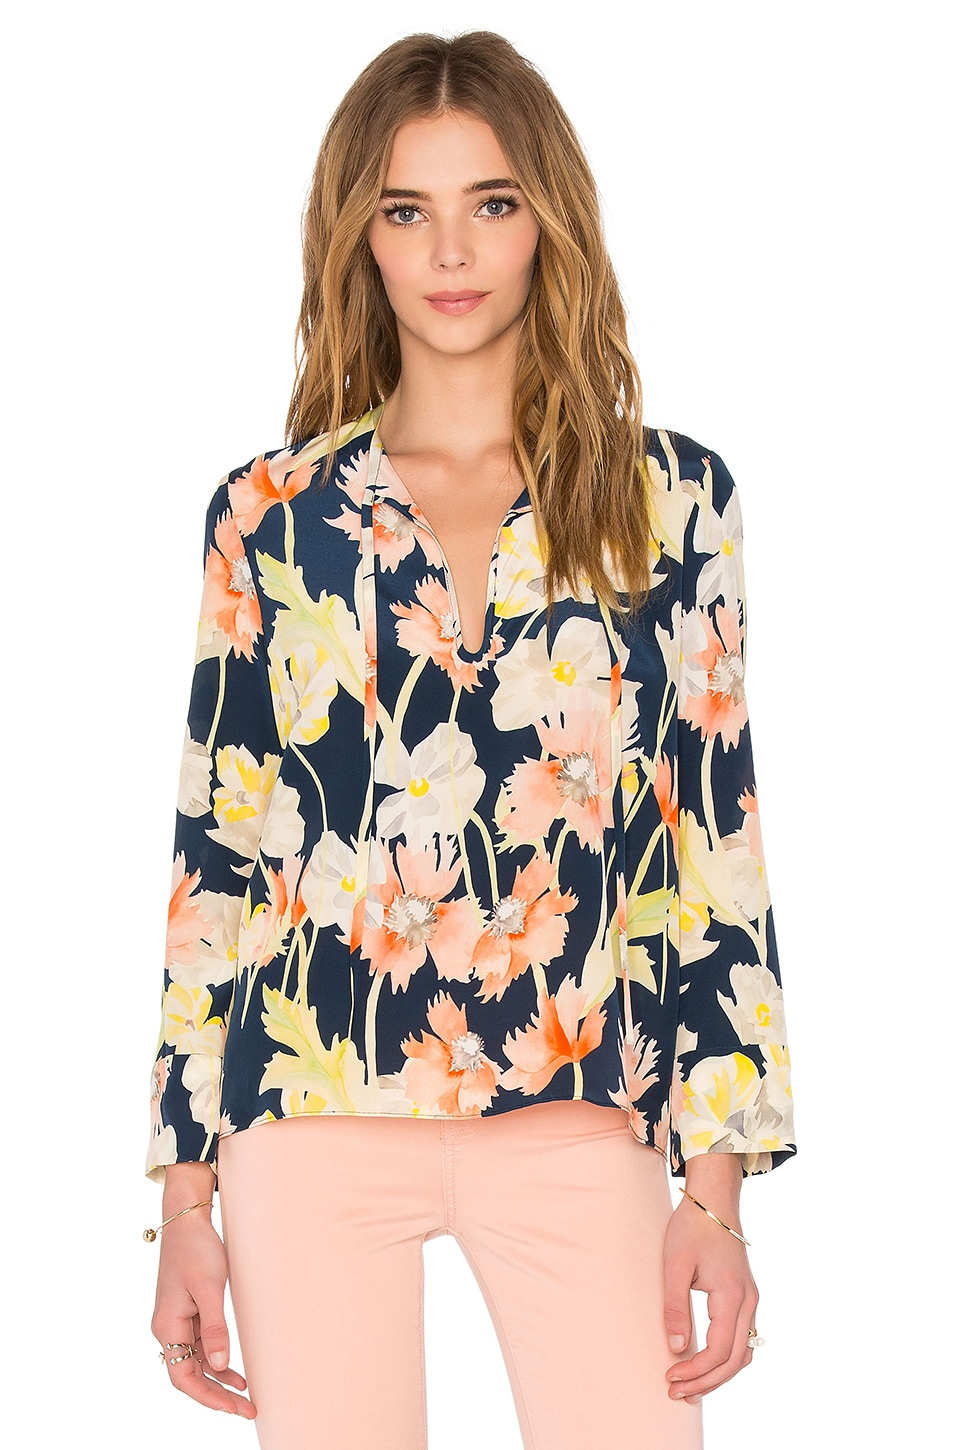 cacharel Tie Neck Blouse in Large Floral